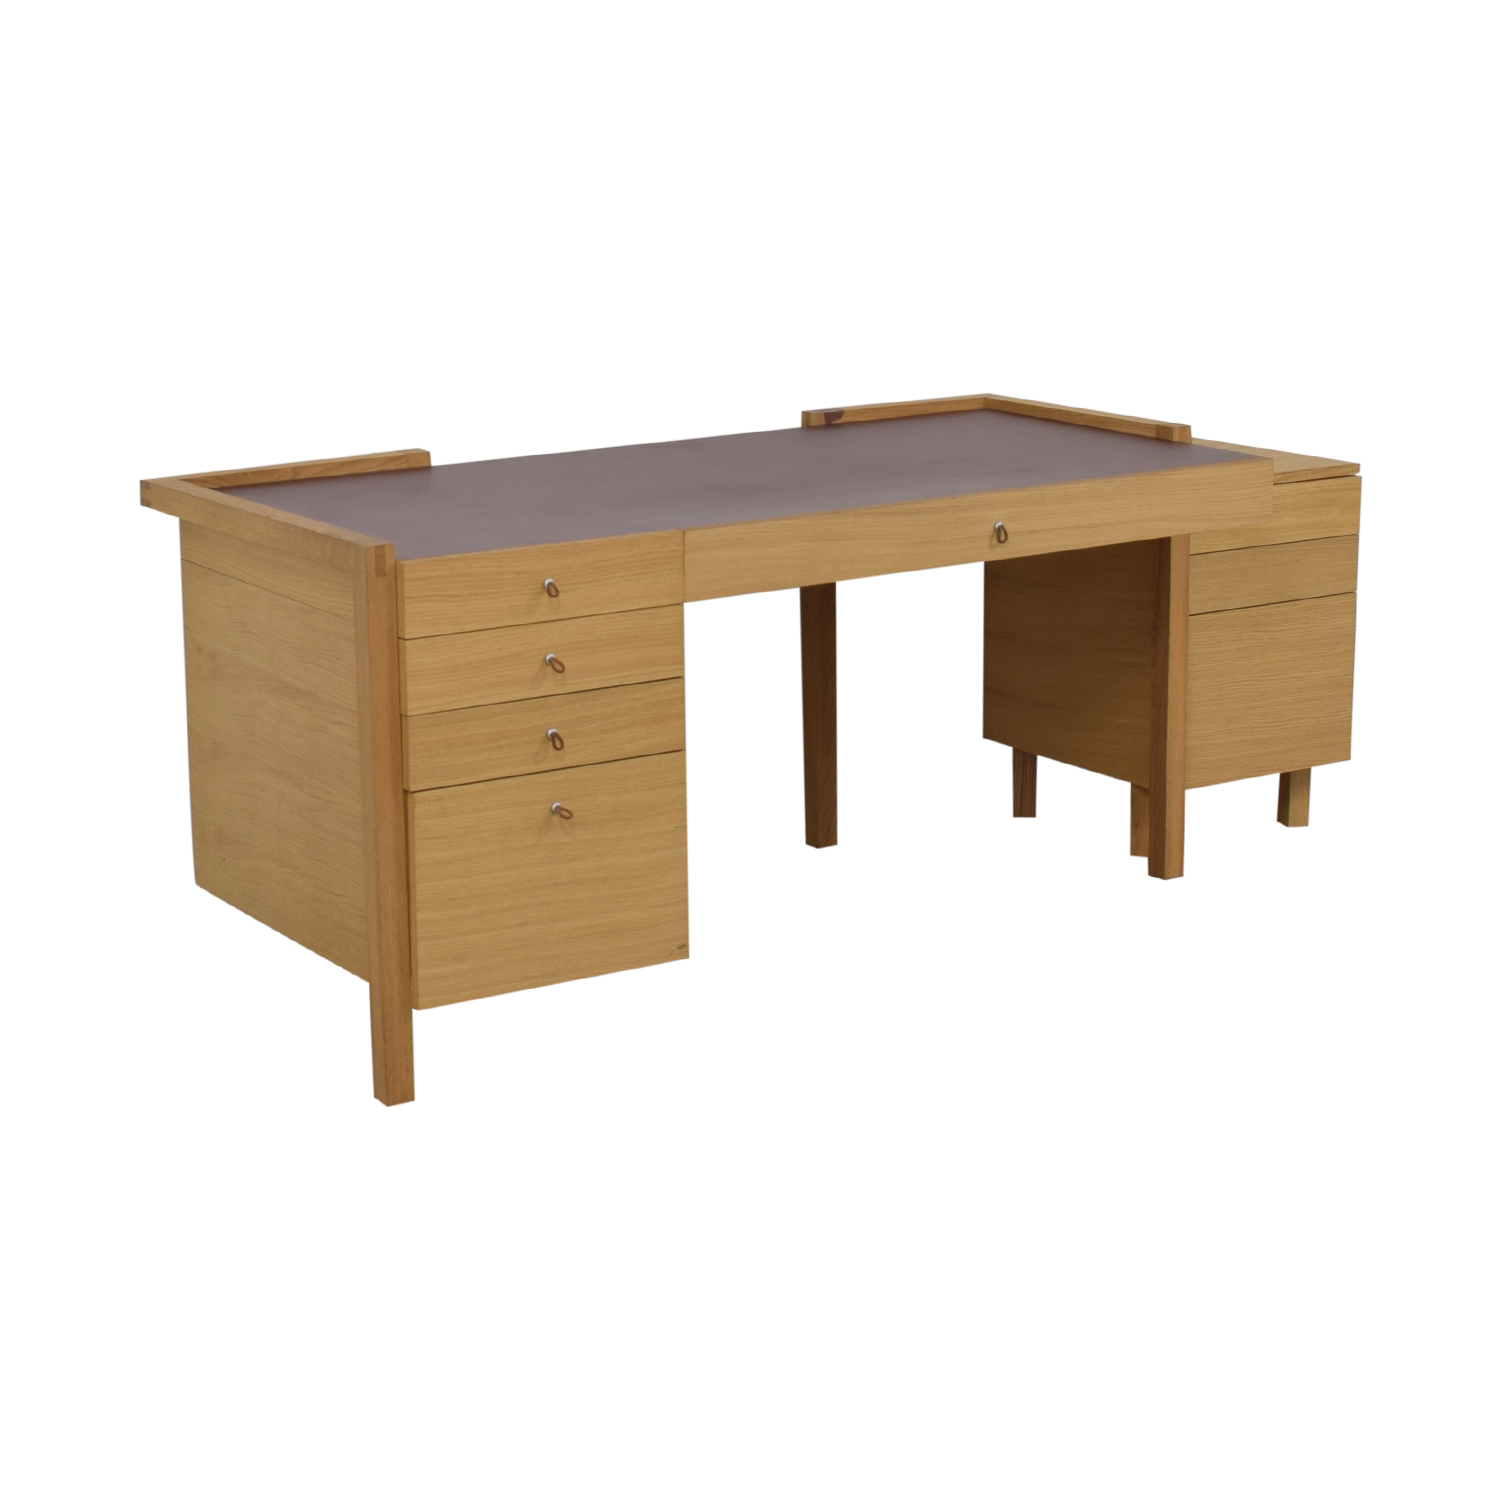 44% OFF - Eight-Drawer Oak Desk and Side Table / Tables